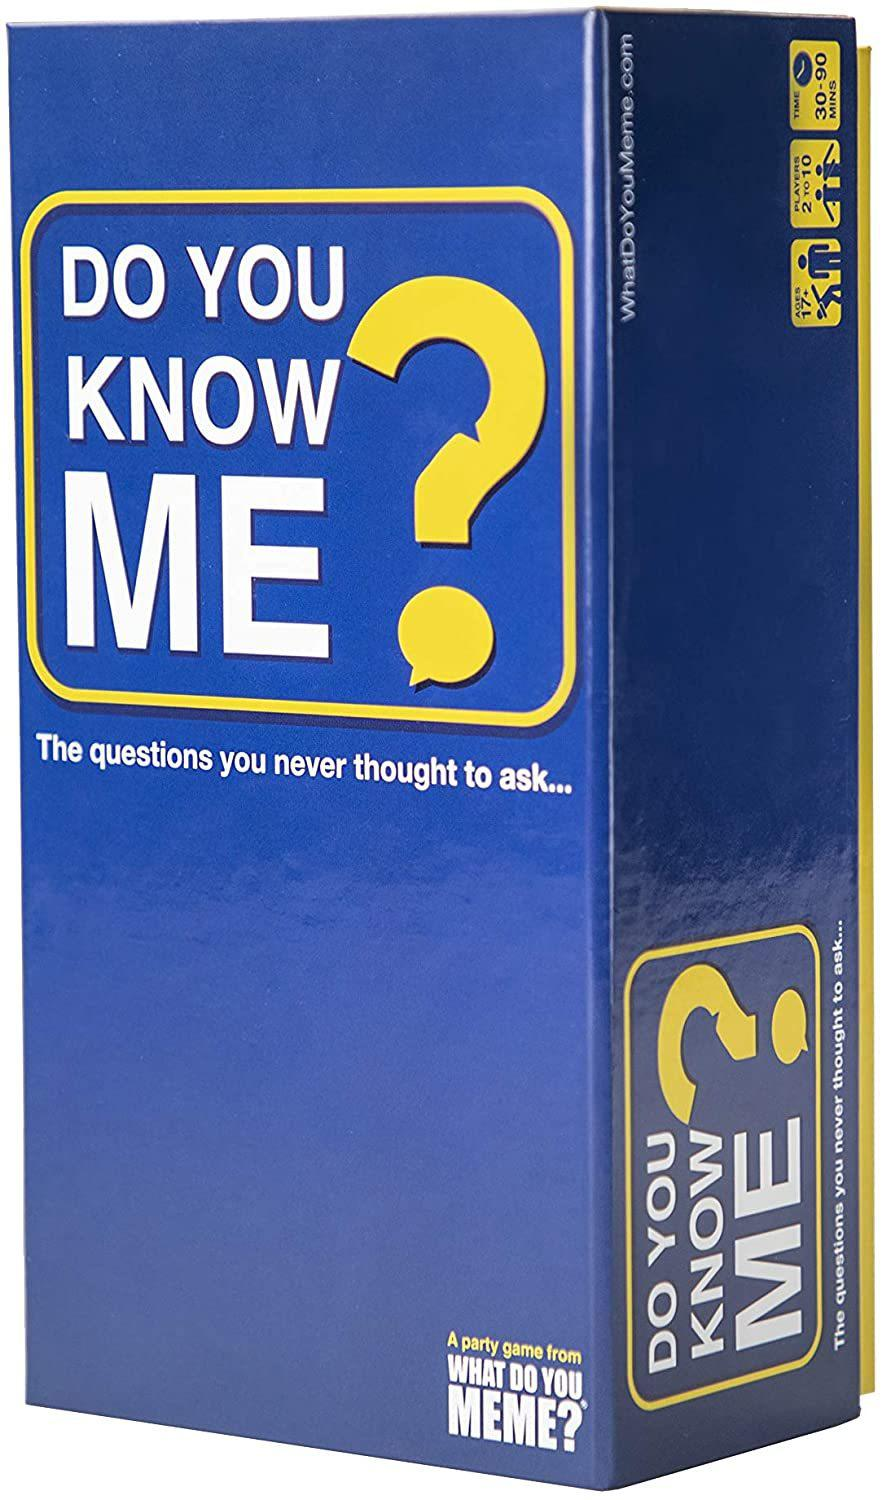 Do You know Me?-What do you Meme?-Game Kings